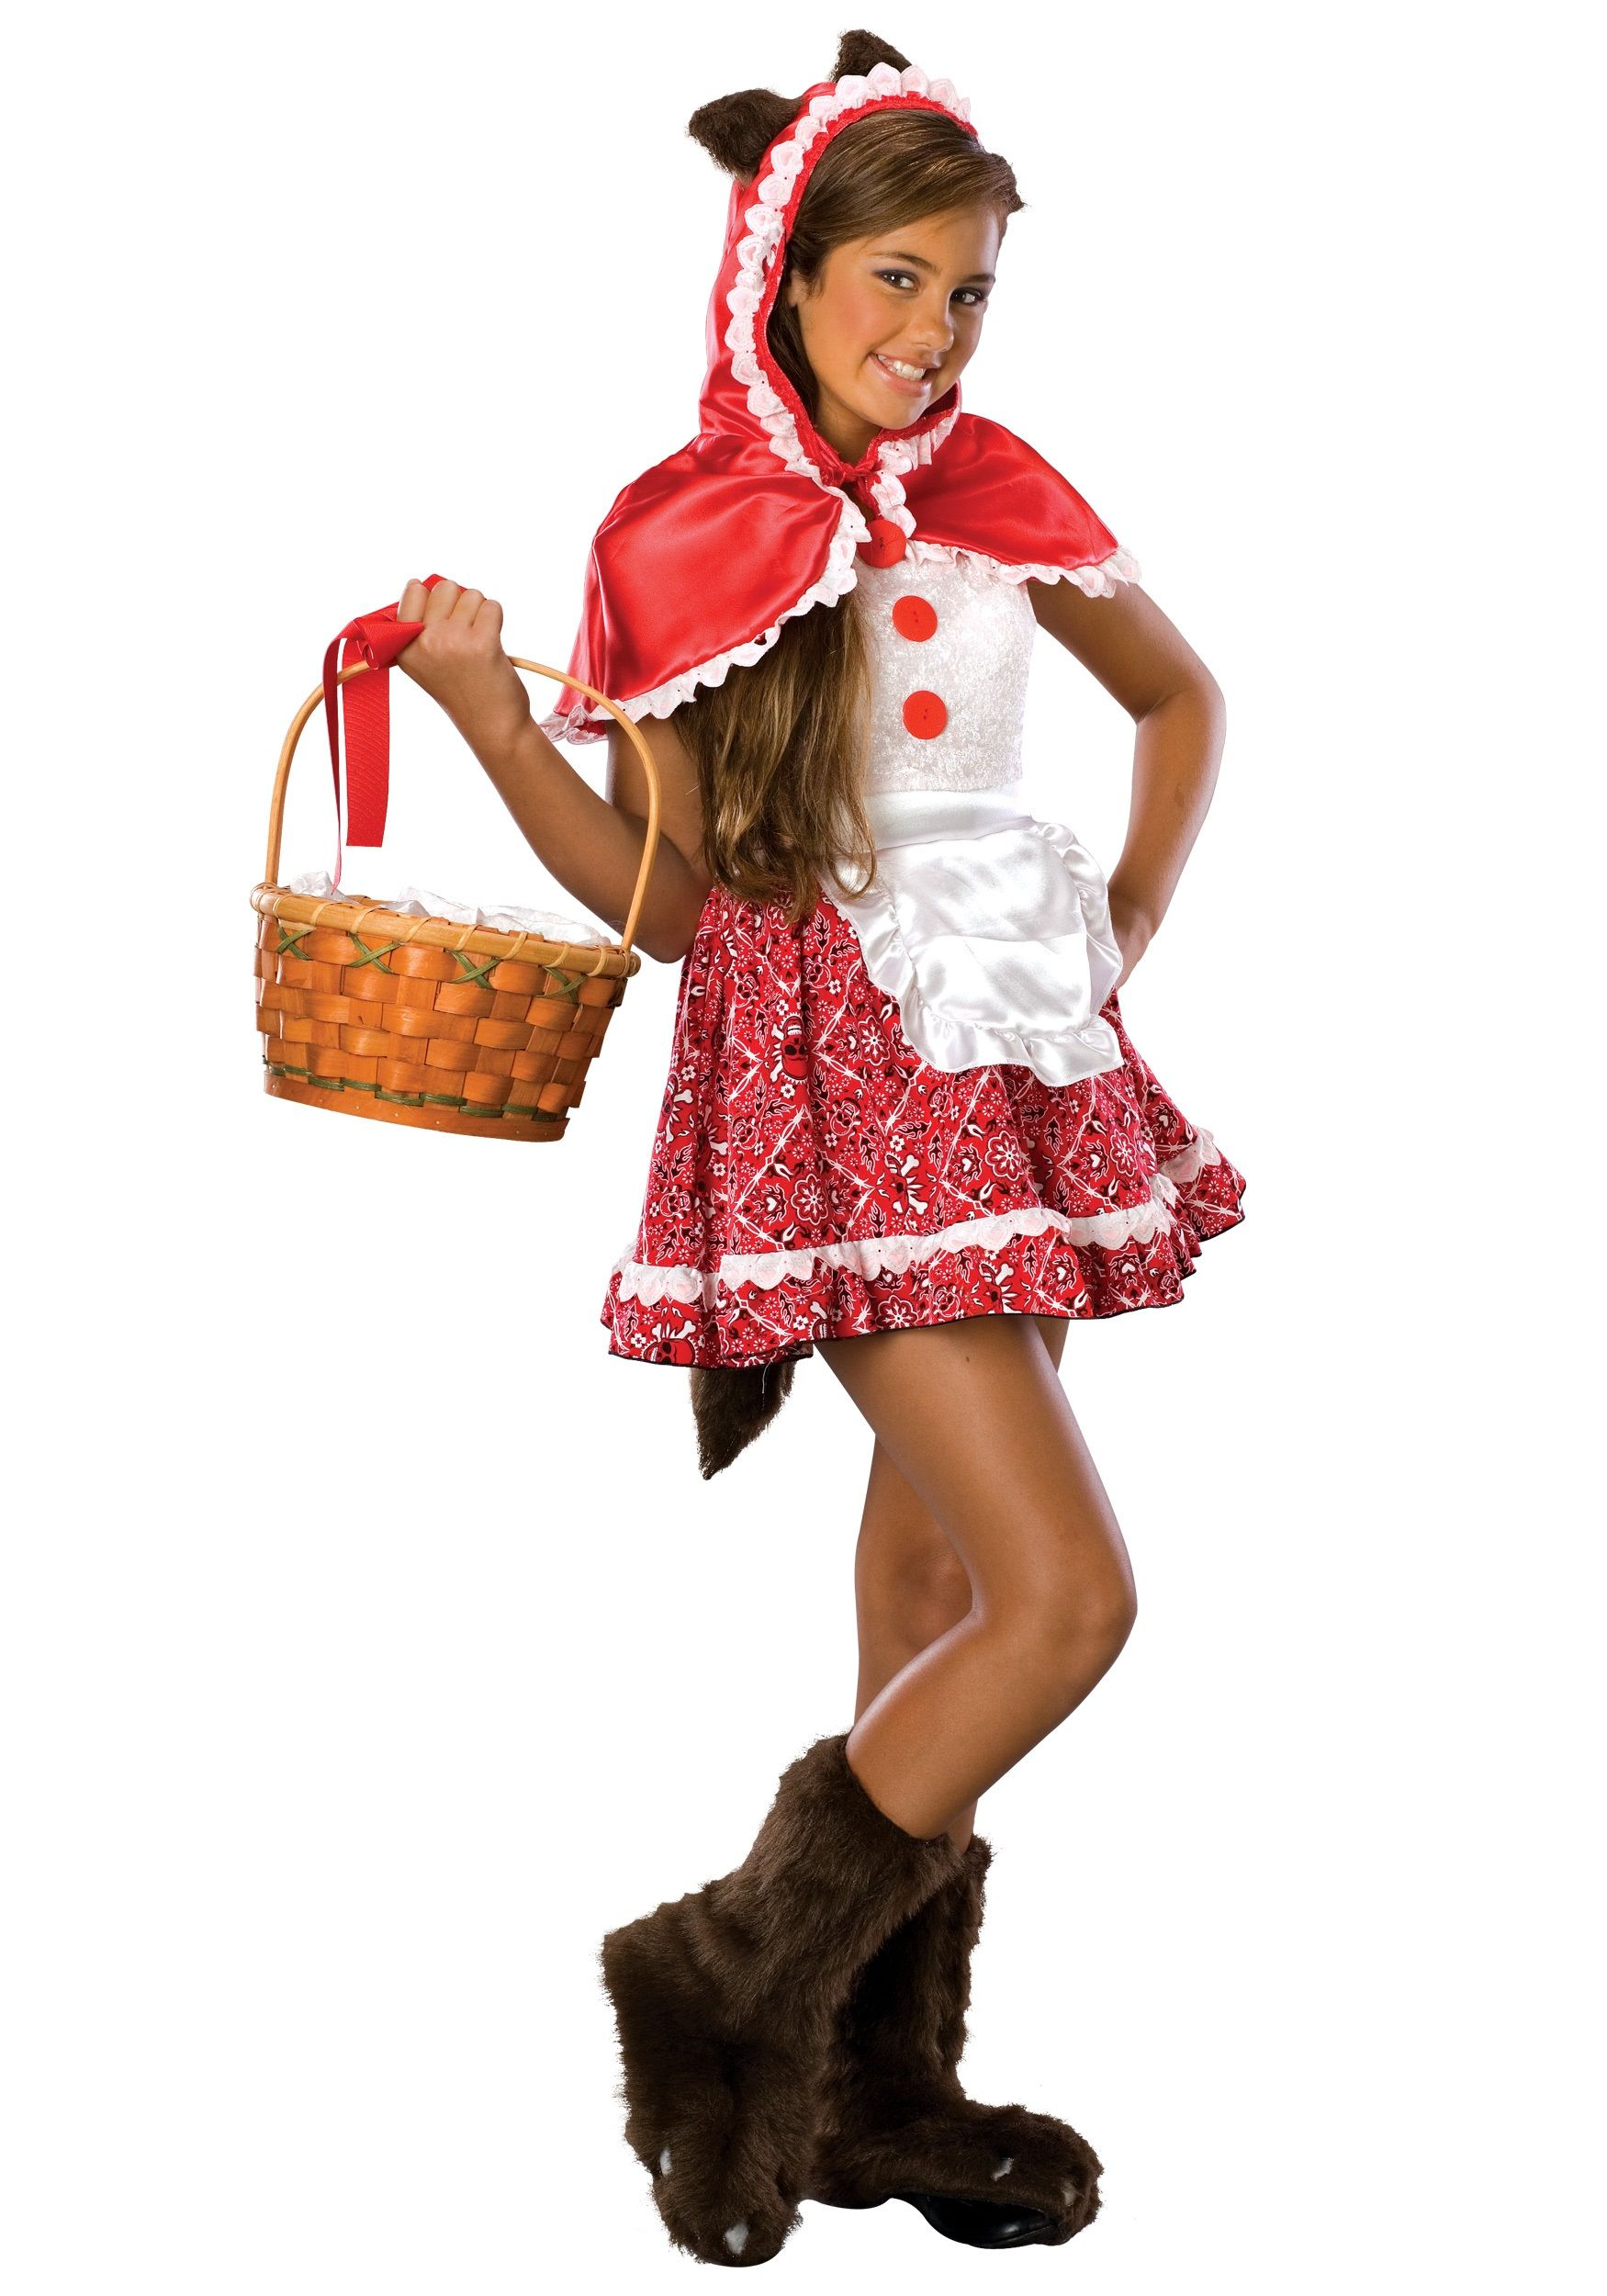 cute+halloween+costumes | Red Riding Hood Costume Tween  sc 1 st  Pinterest & cute+halloween+costumes | Red Riding Hood Costume Tween | Halloween ...